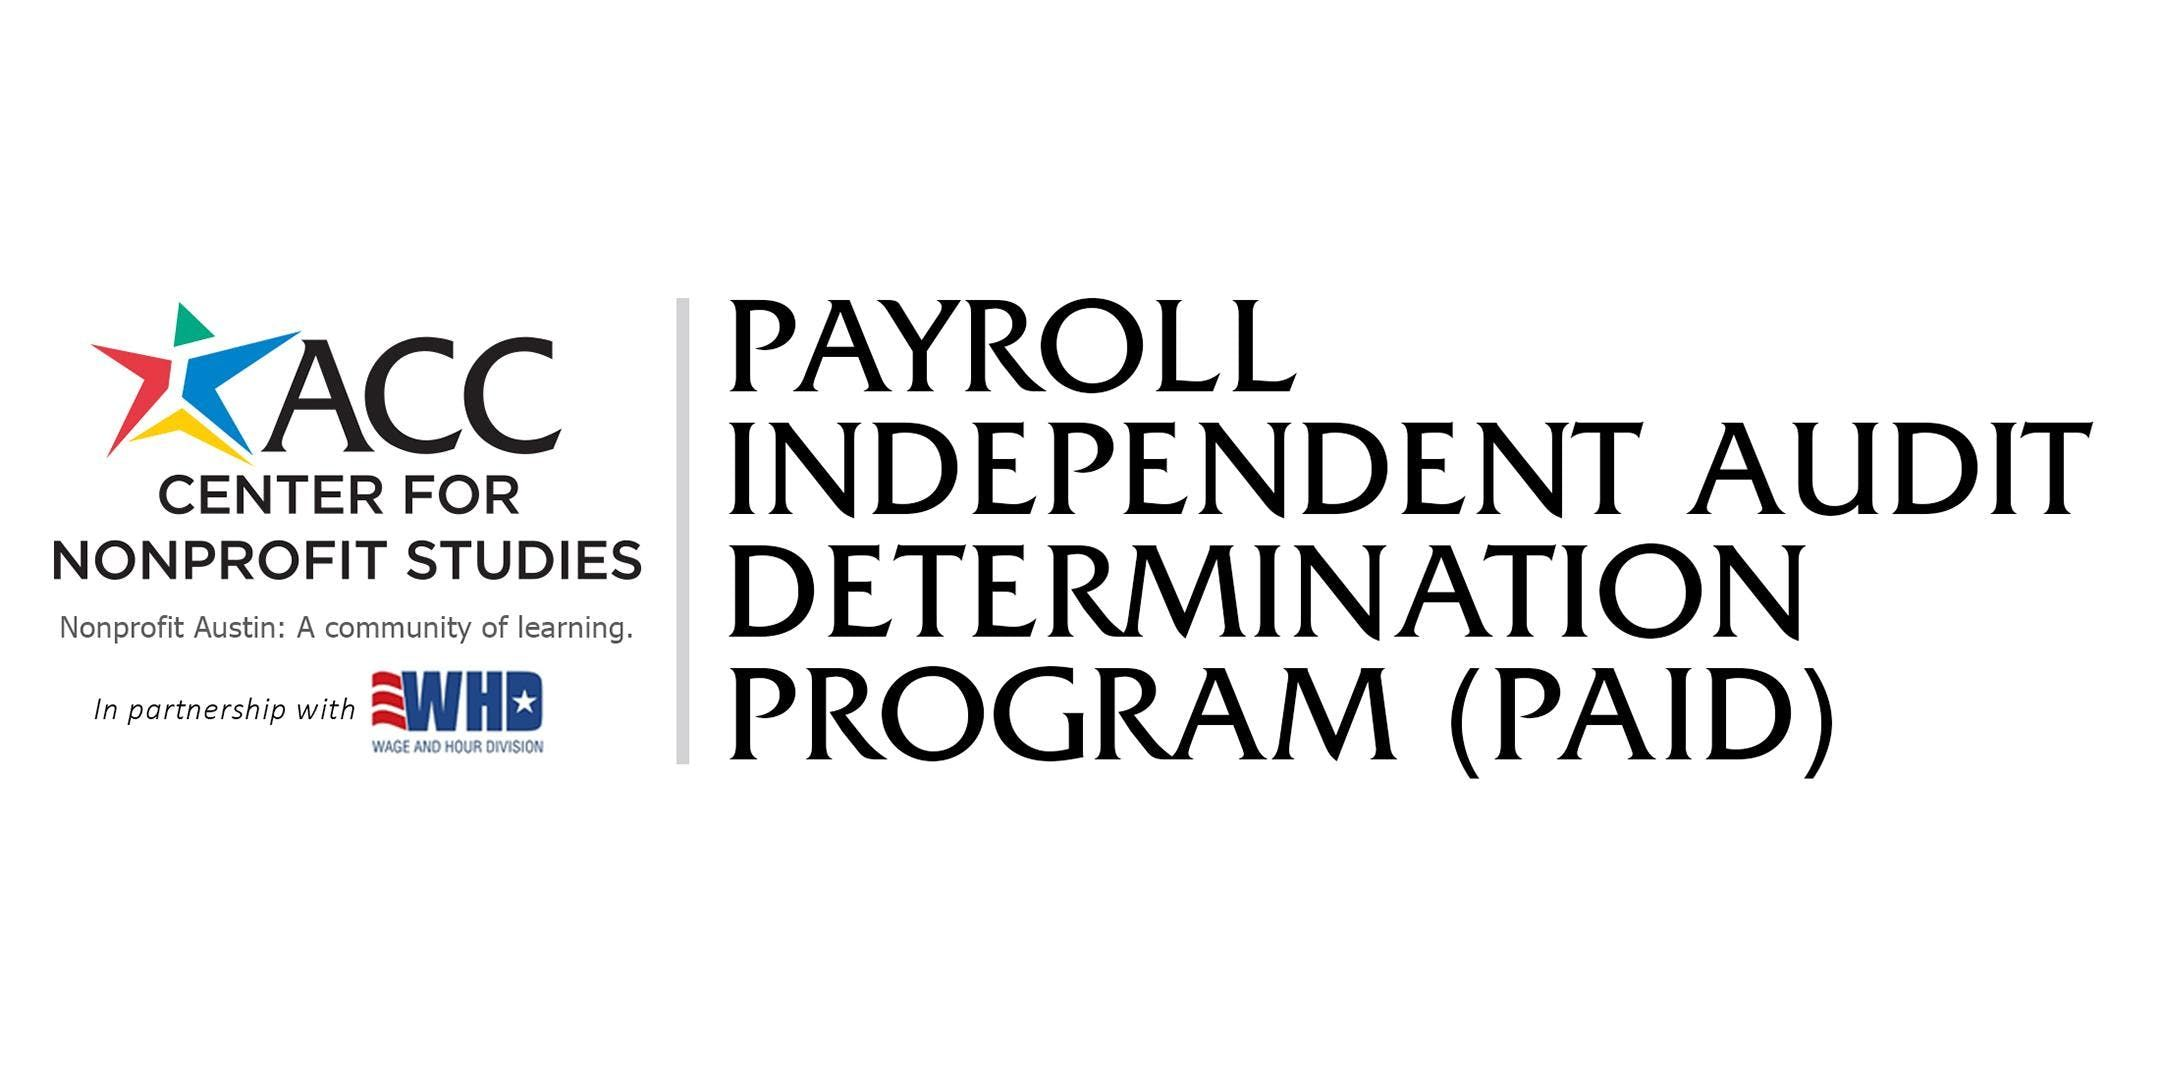 Payroll Independent Audit Determination Program Paid At Acc